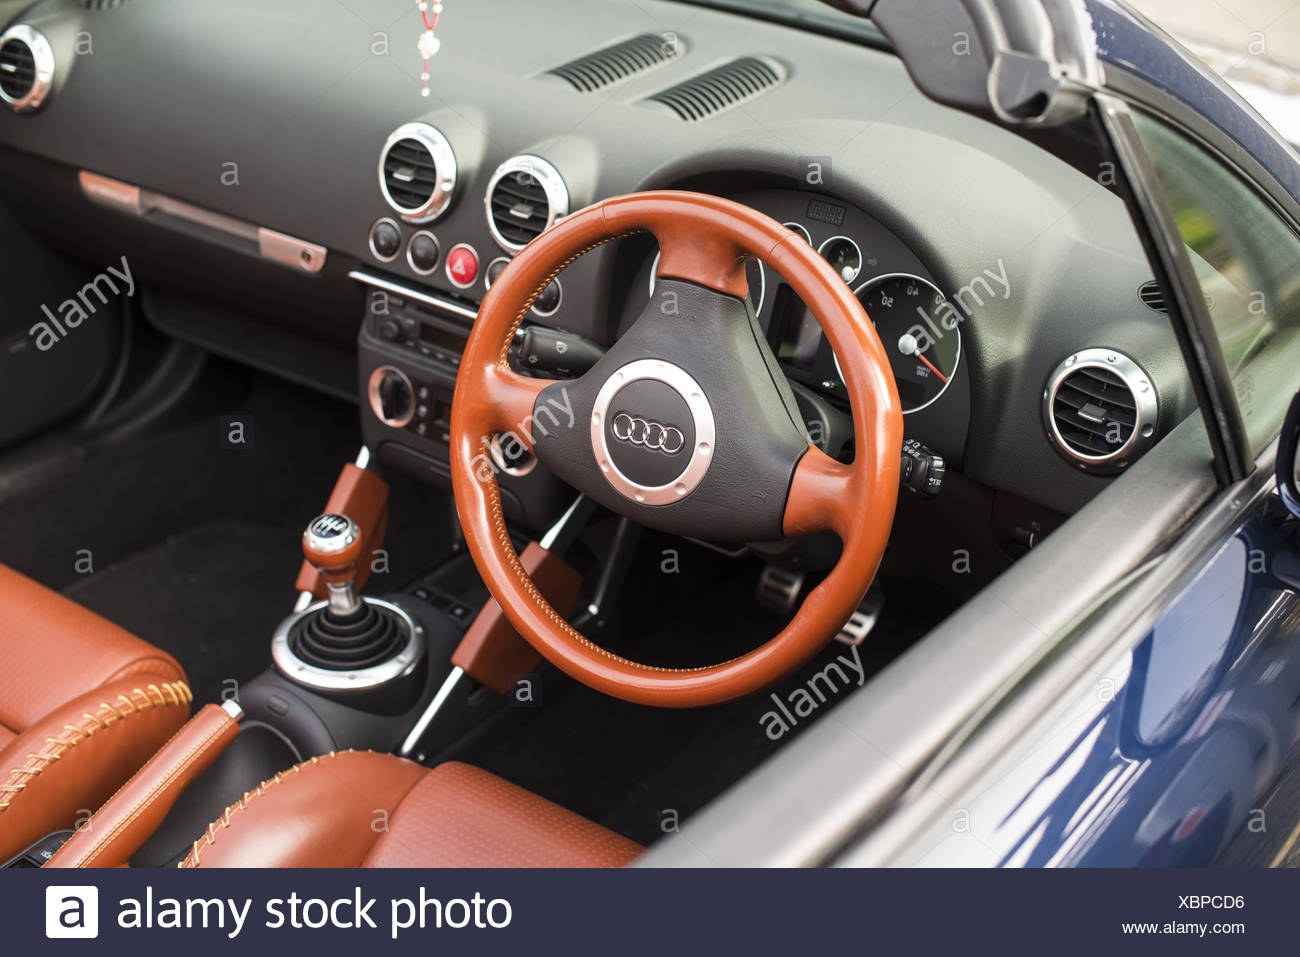 Interior Of An Audi Convertible Auto Stock Photo Alamy